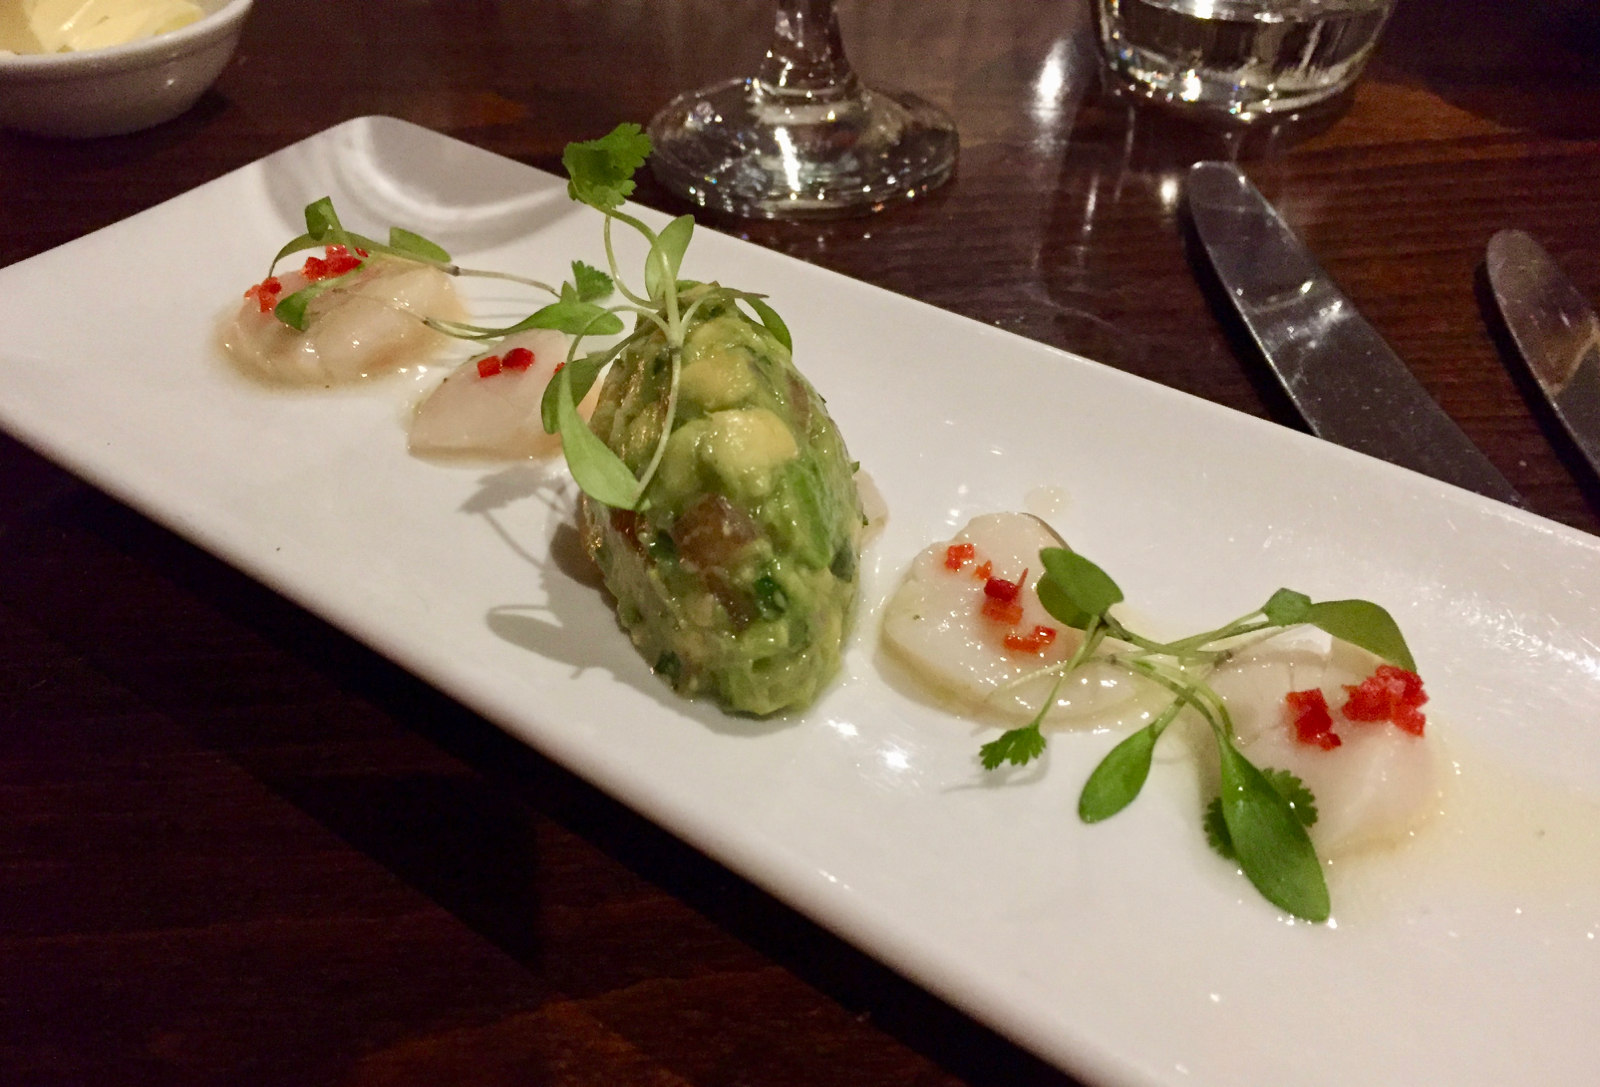 Webbe's at the Fish Cafe - Scallop Cerviche with Guacamole